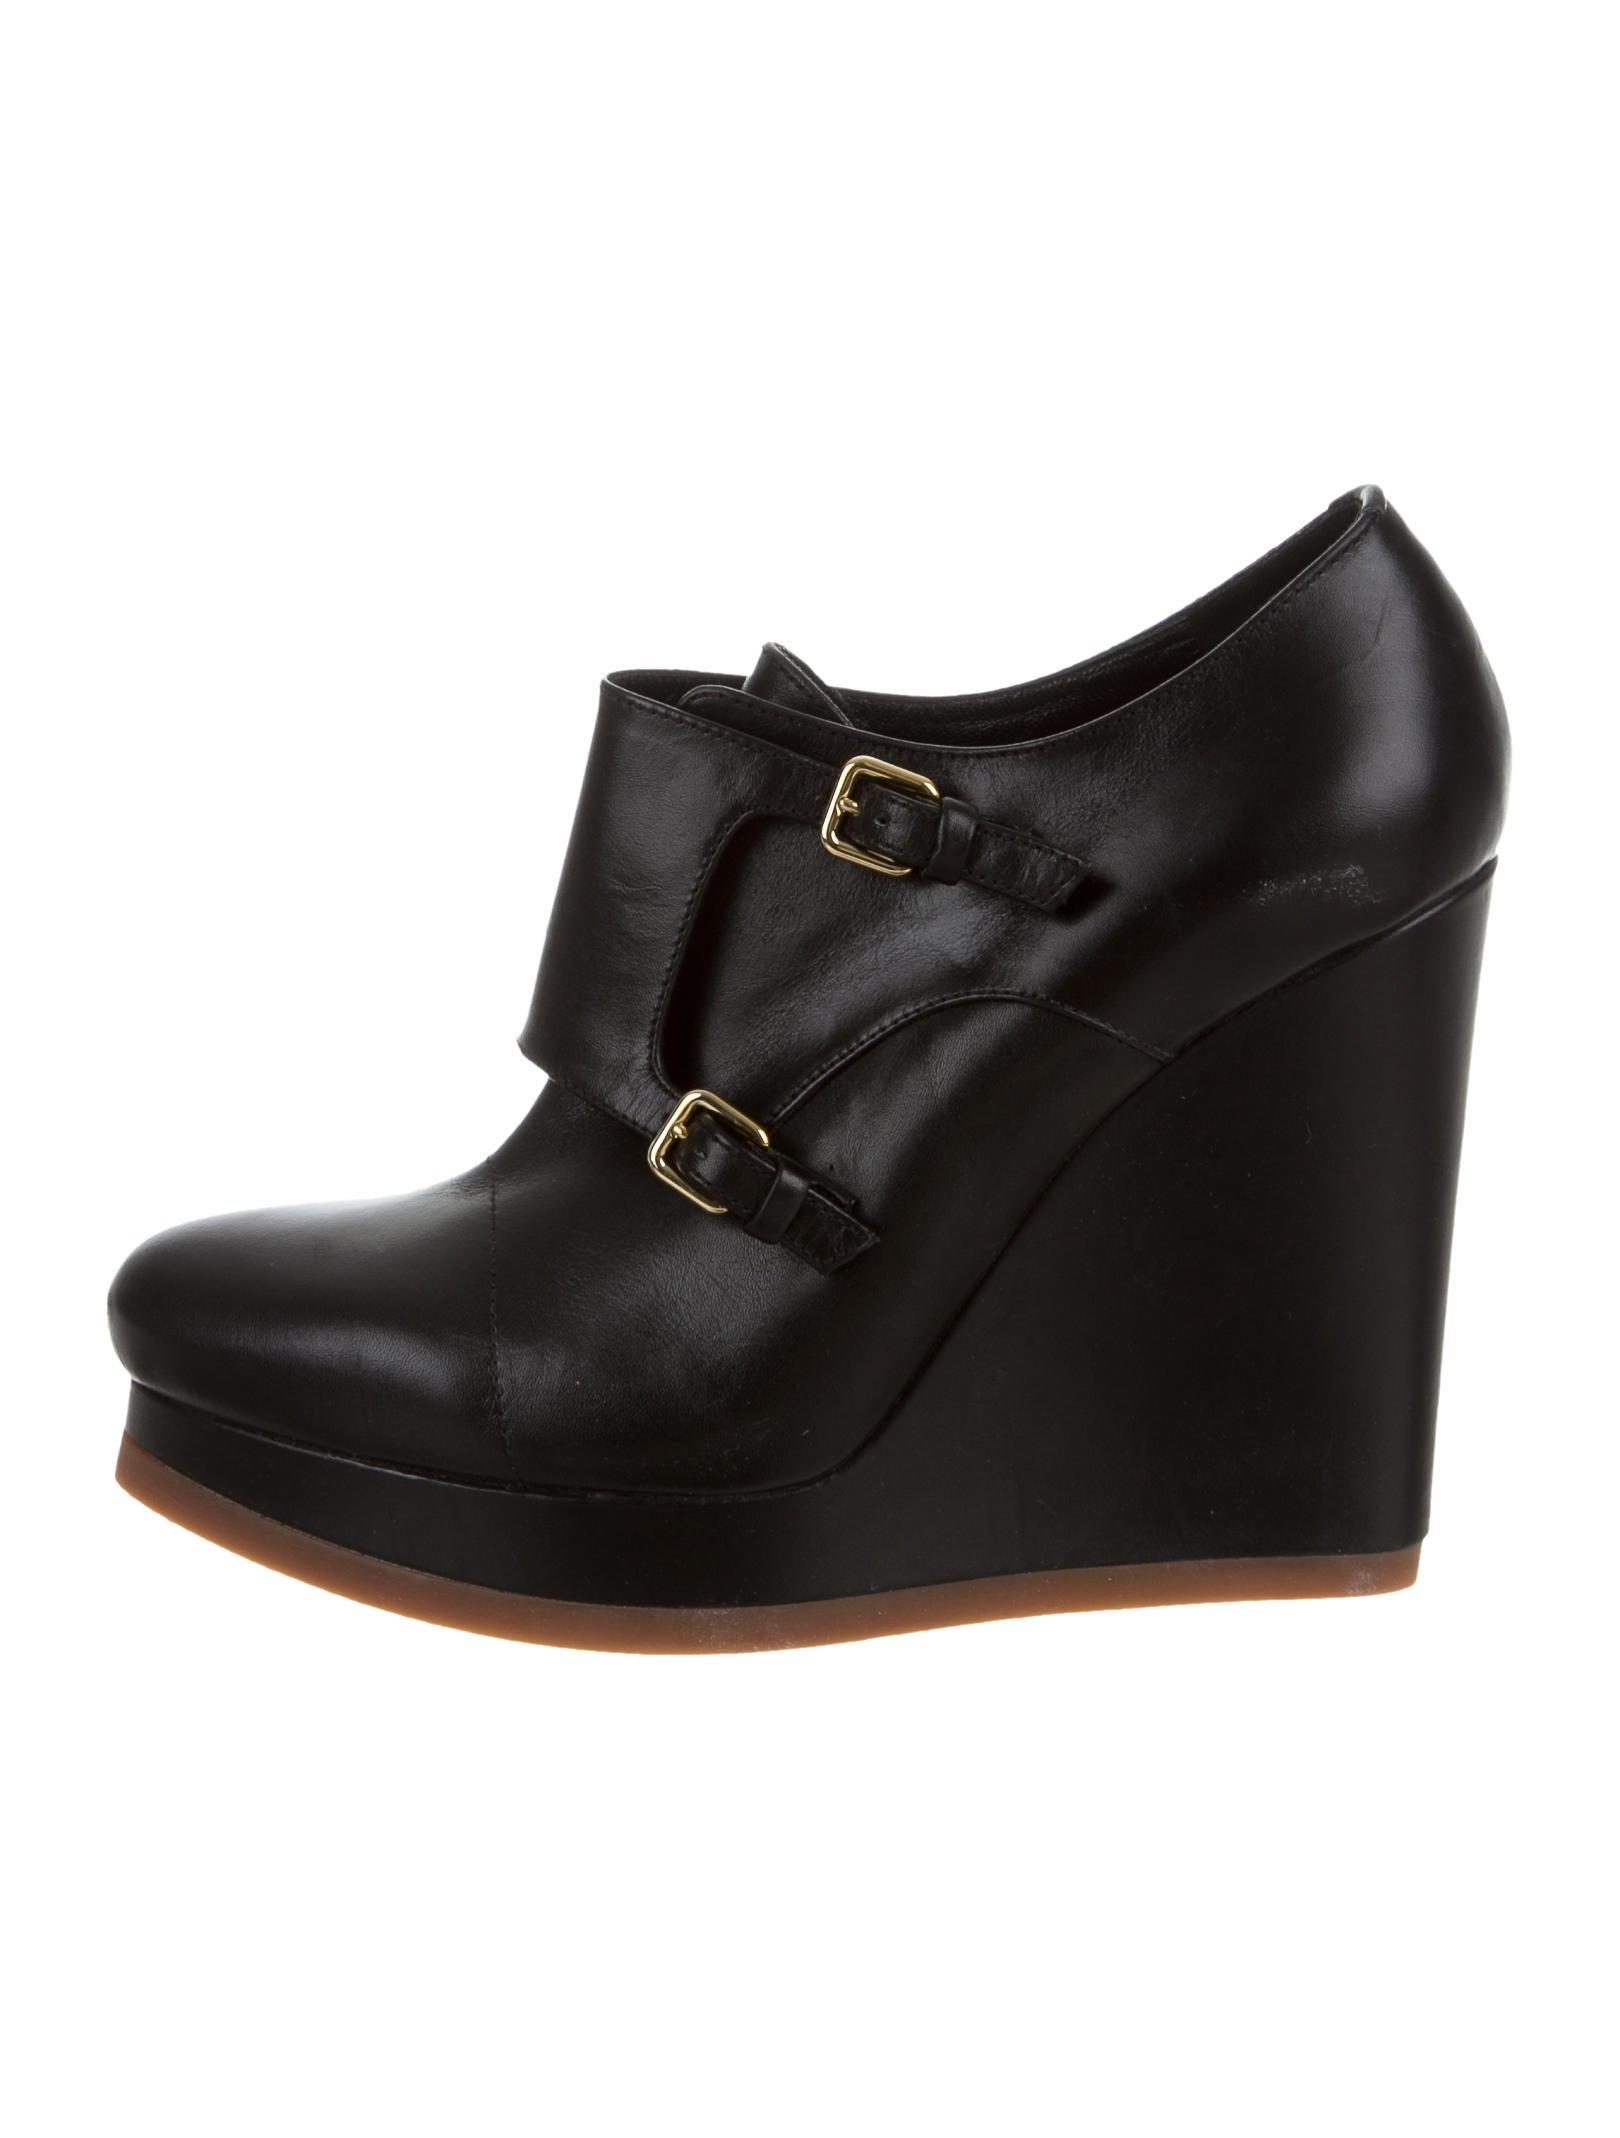 jil sander leather wedge ankle boots shoes jil35934